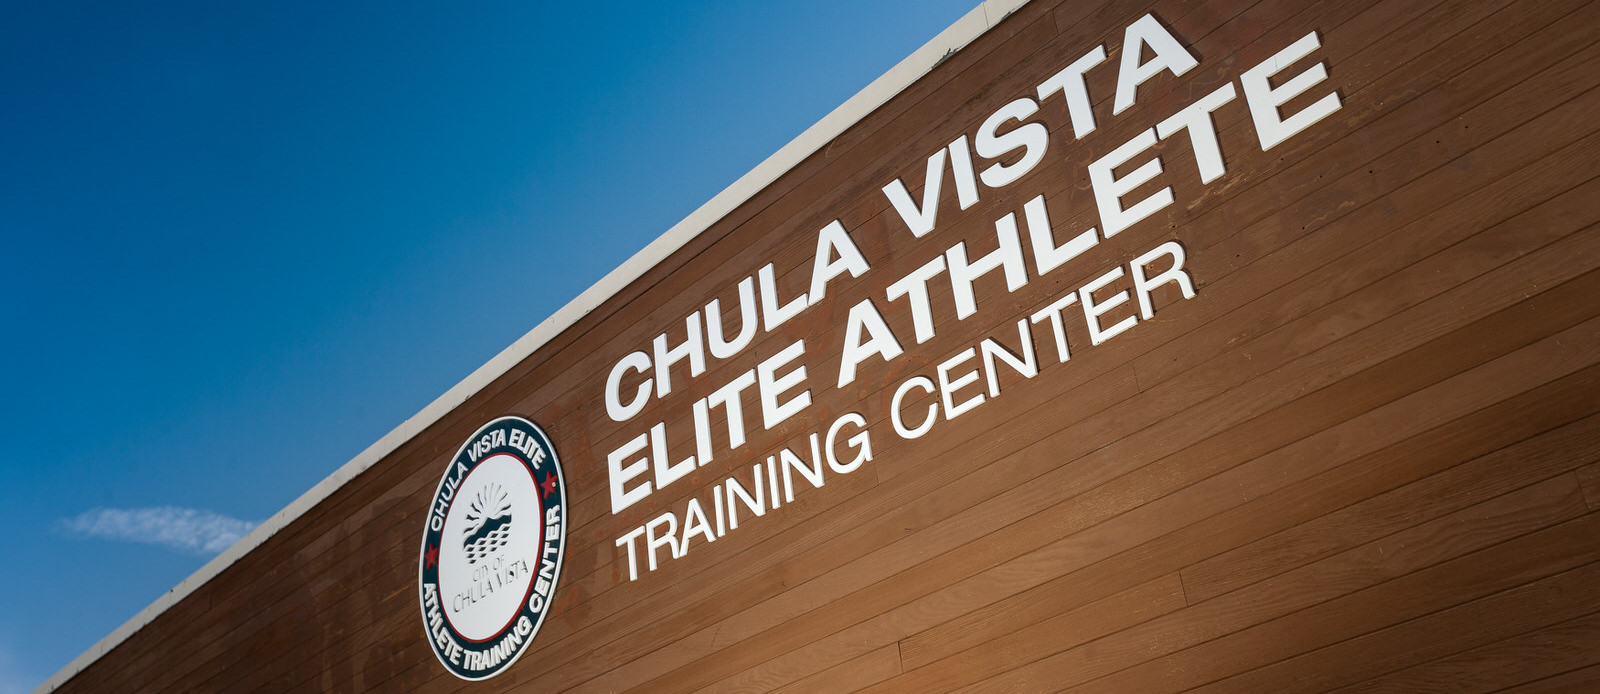 chula vista elite athlete training center_EK_04.jpg